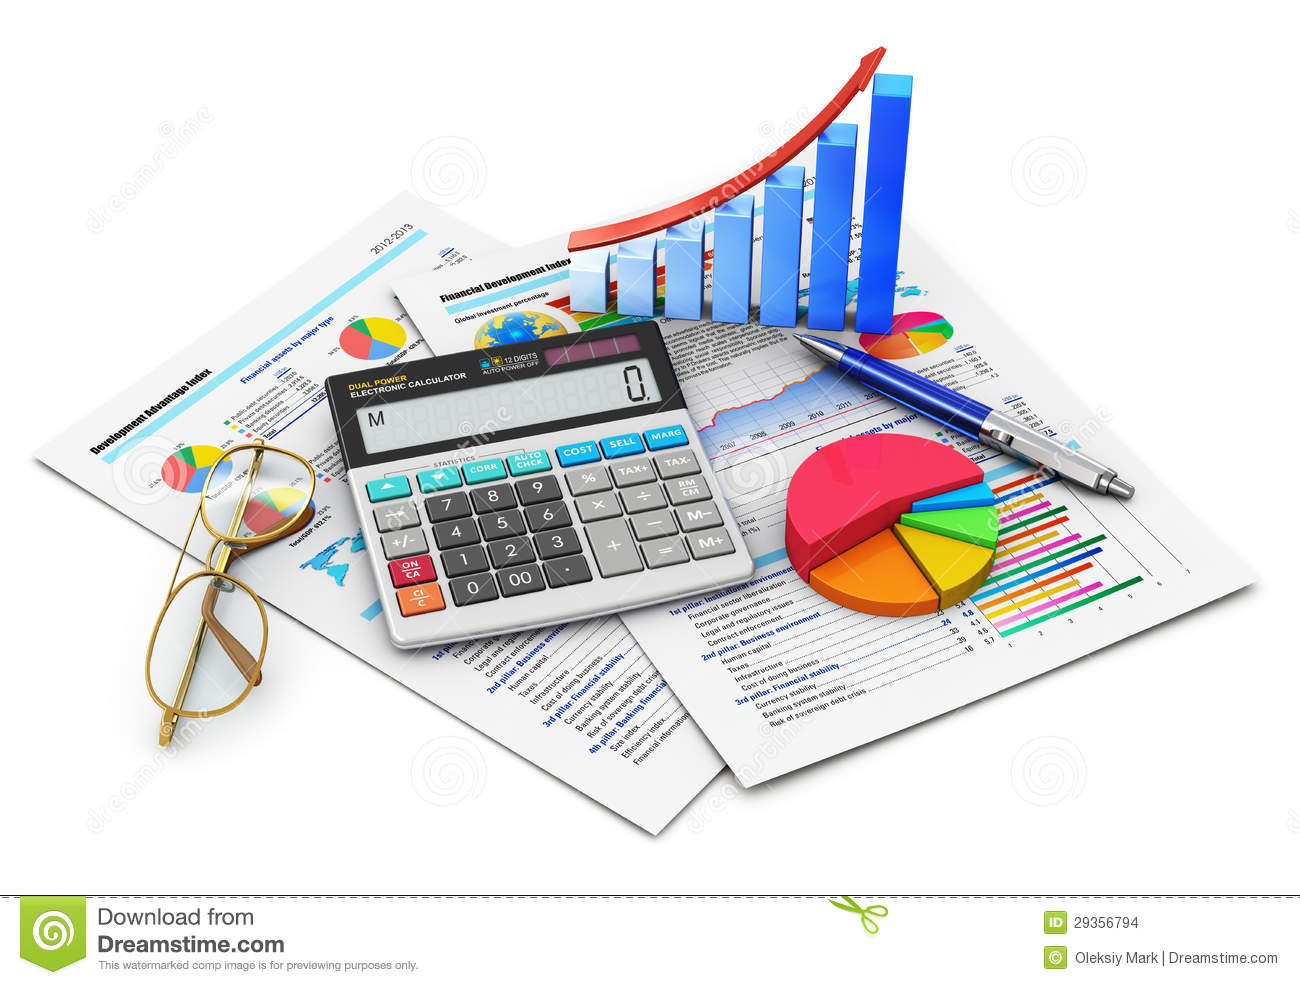 financial-accounting-clipart-4.jpg